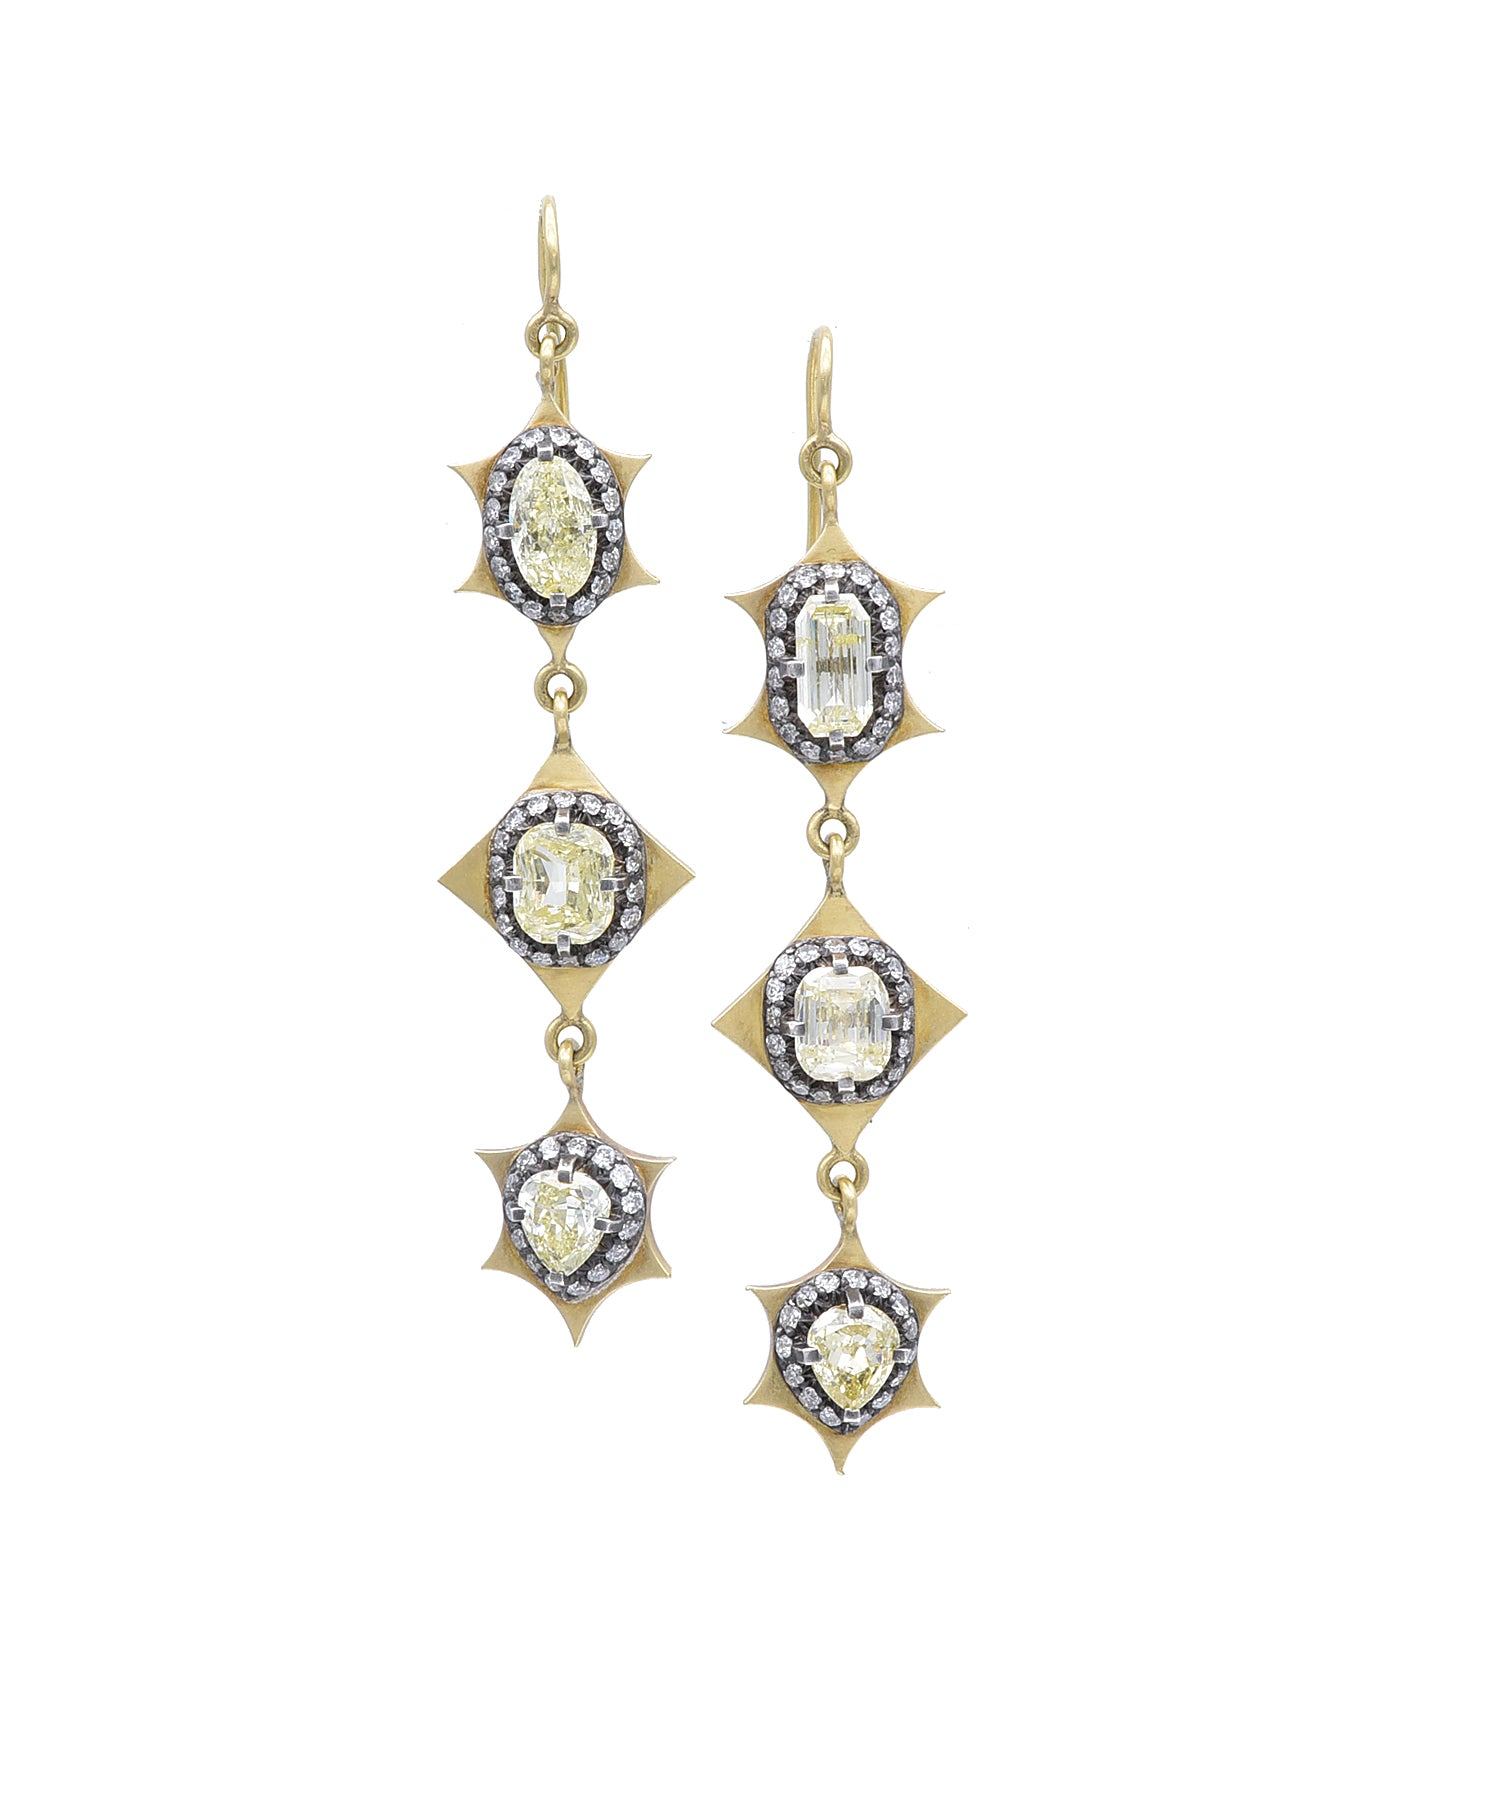 Remarkable mixed-shape diamond earrings